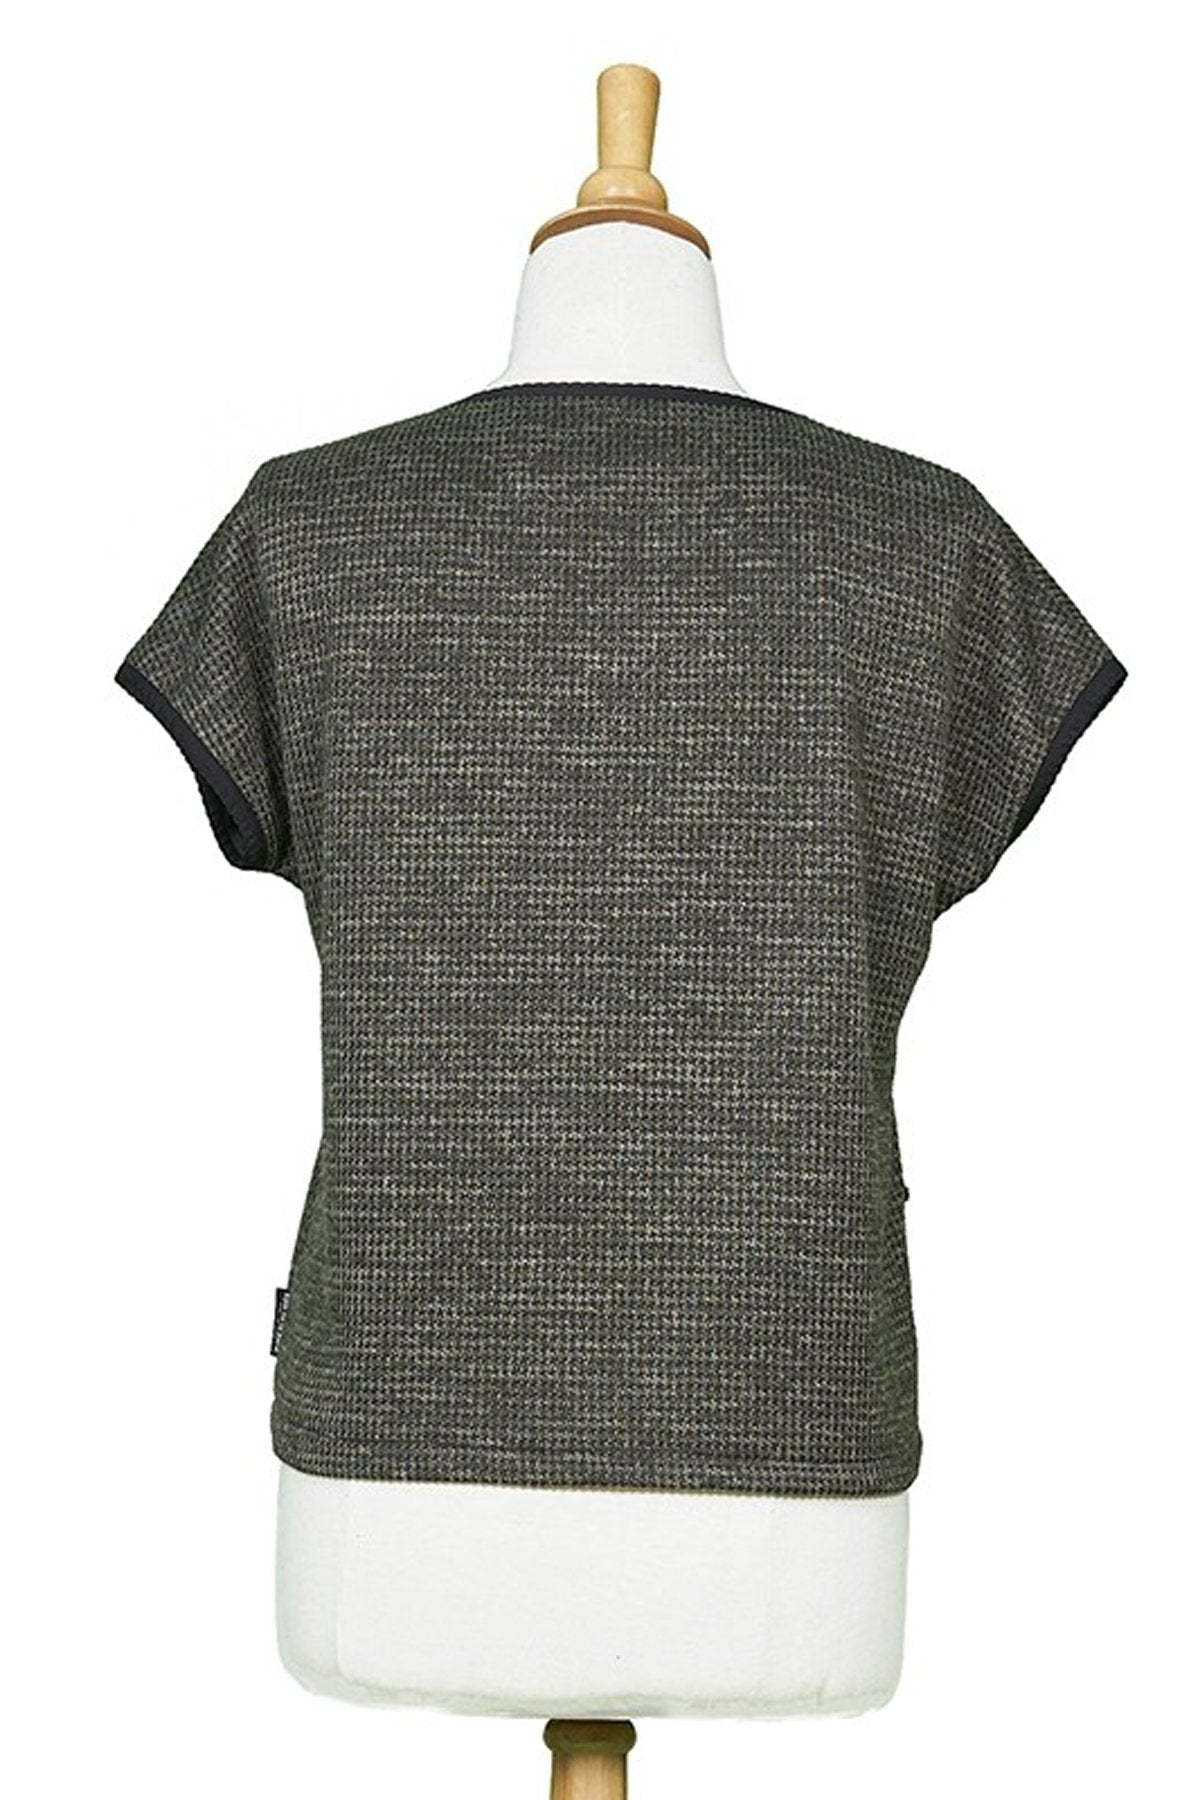 Yukon Top by Rien ne se Perd Tout se Cree, Khaki, back view on mannequin, short sleeves, sweater, diagonal front pocket, sizes XS-XXL, back view, made in Quebec